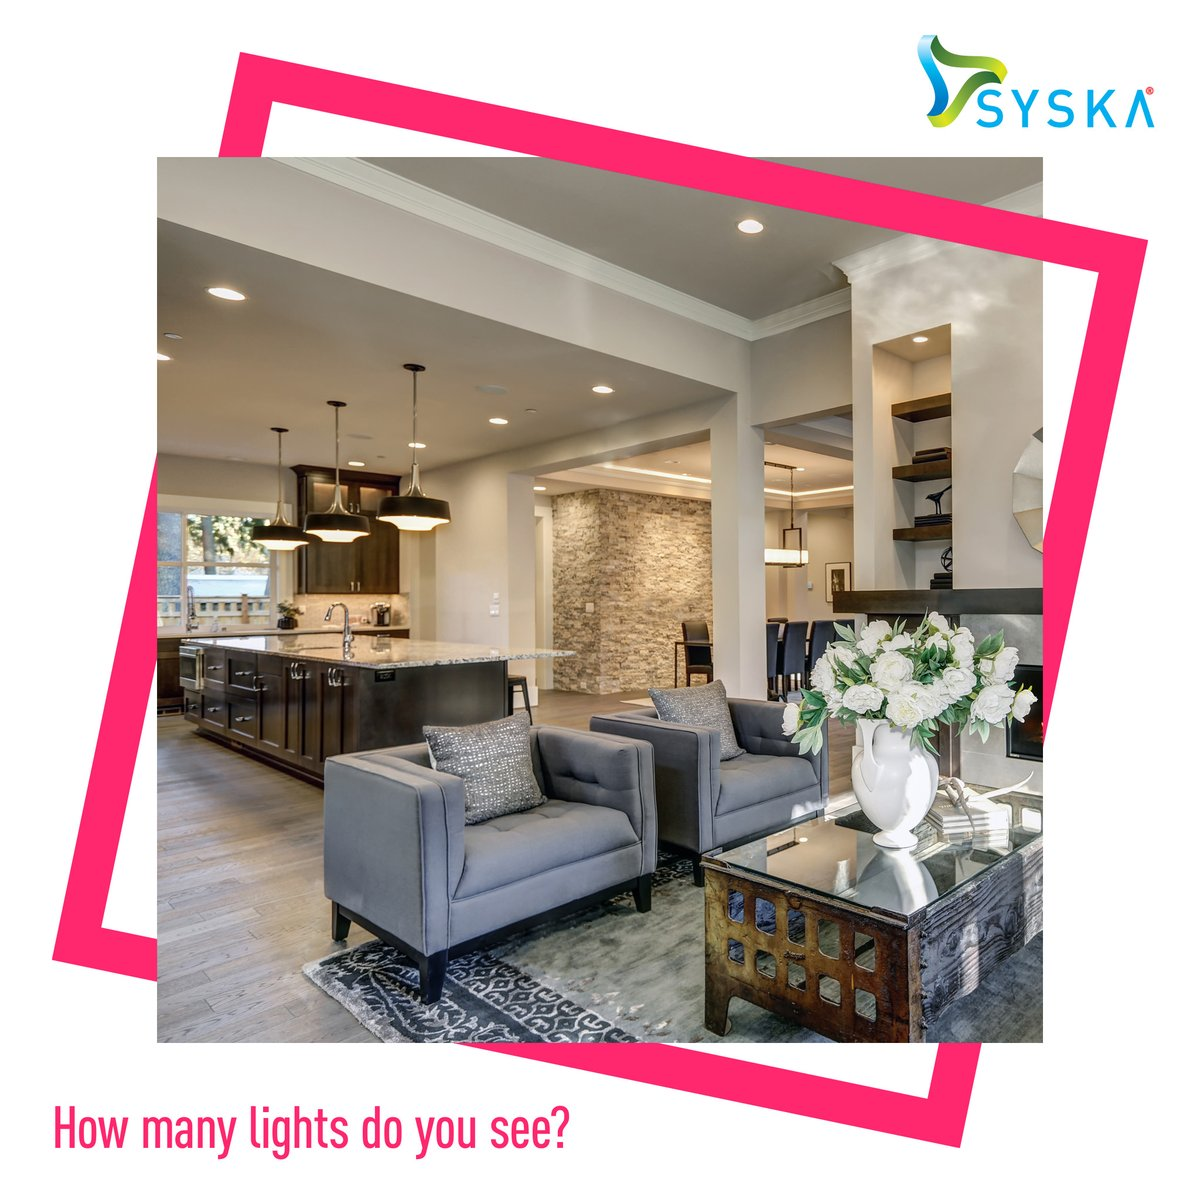 Tell us how many @Syska_LED lights you see in this image for a chance to win our giveaway! Here are the rules: - Follow @Syska_LED on Facebook, Twitter and Instagram - Comment on all 3 @Syska_LED contest posts using #GameOfLights - Tag 3 friends and invite them to participate